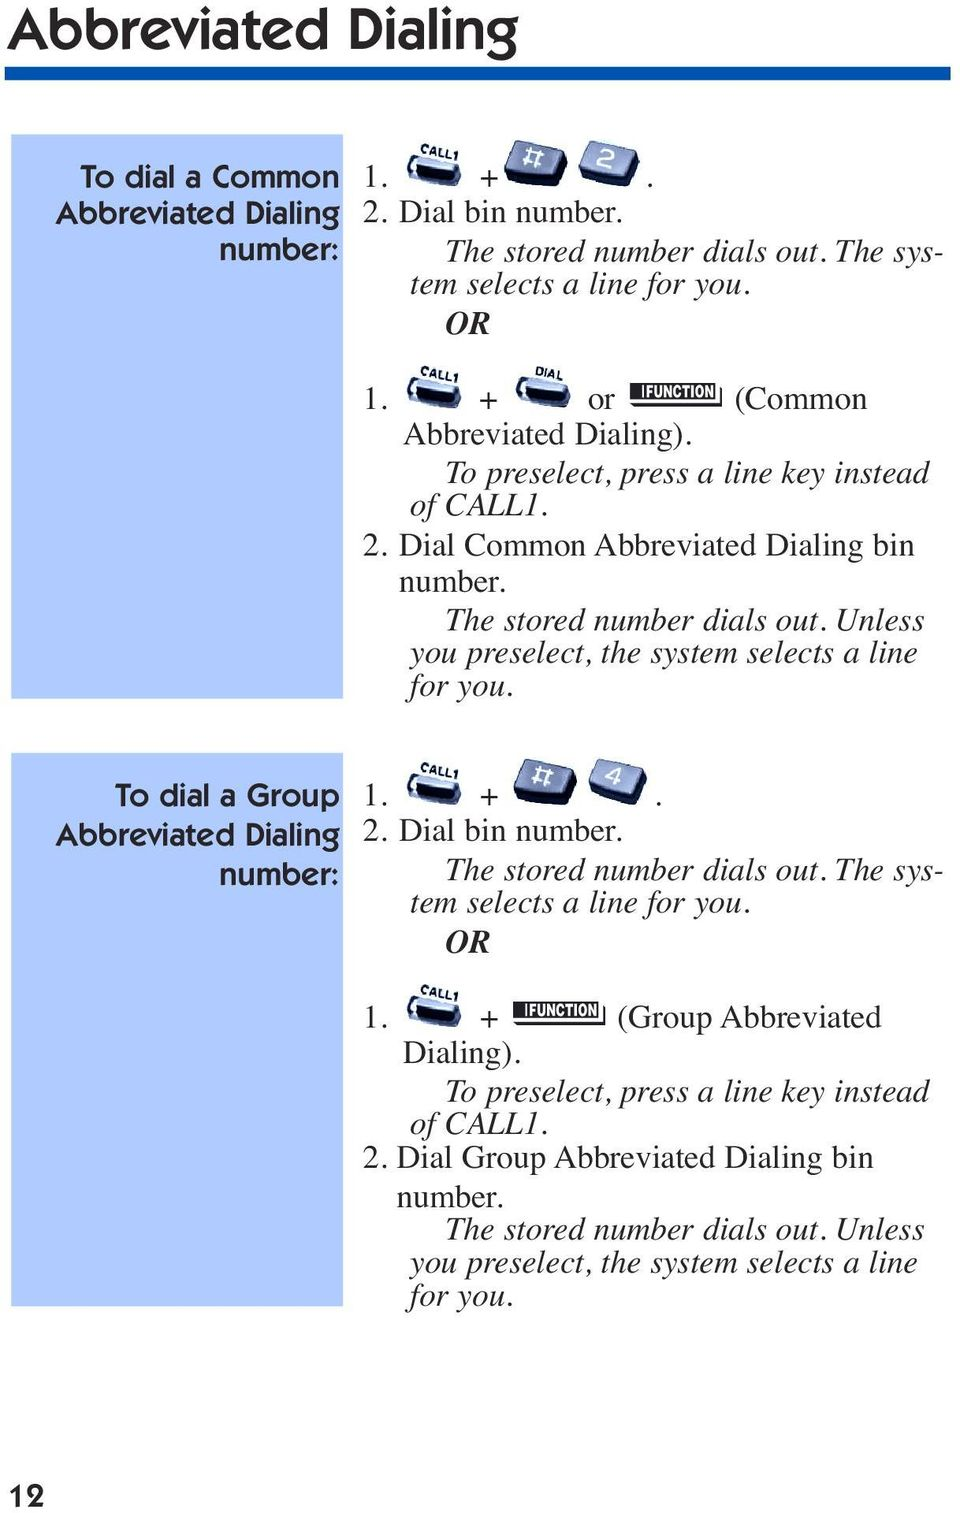 To dial a Group Abbreviated Dialing number: 1. +. 2. Dial bin number. The stored number dials out. The system selects a line for you. 1. + (Group Abbreviated Dialing).